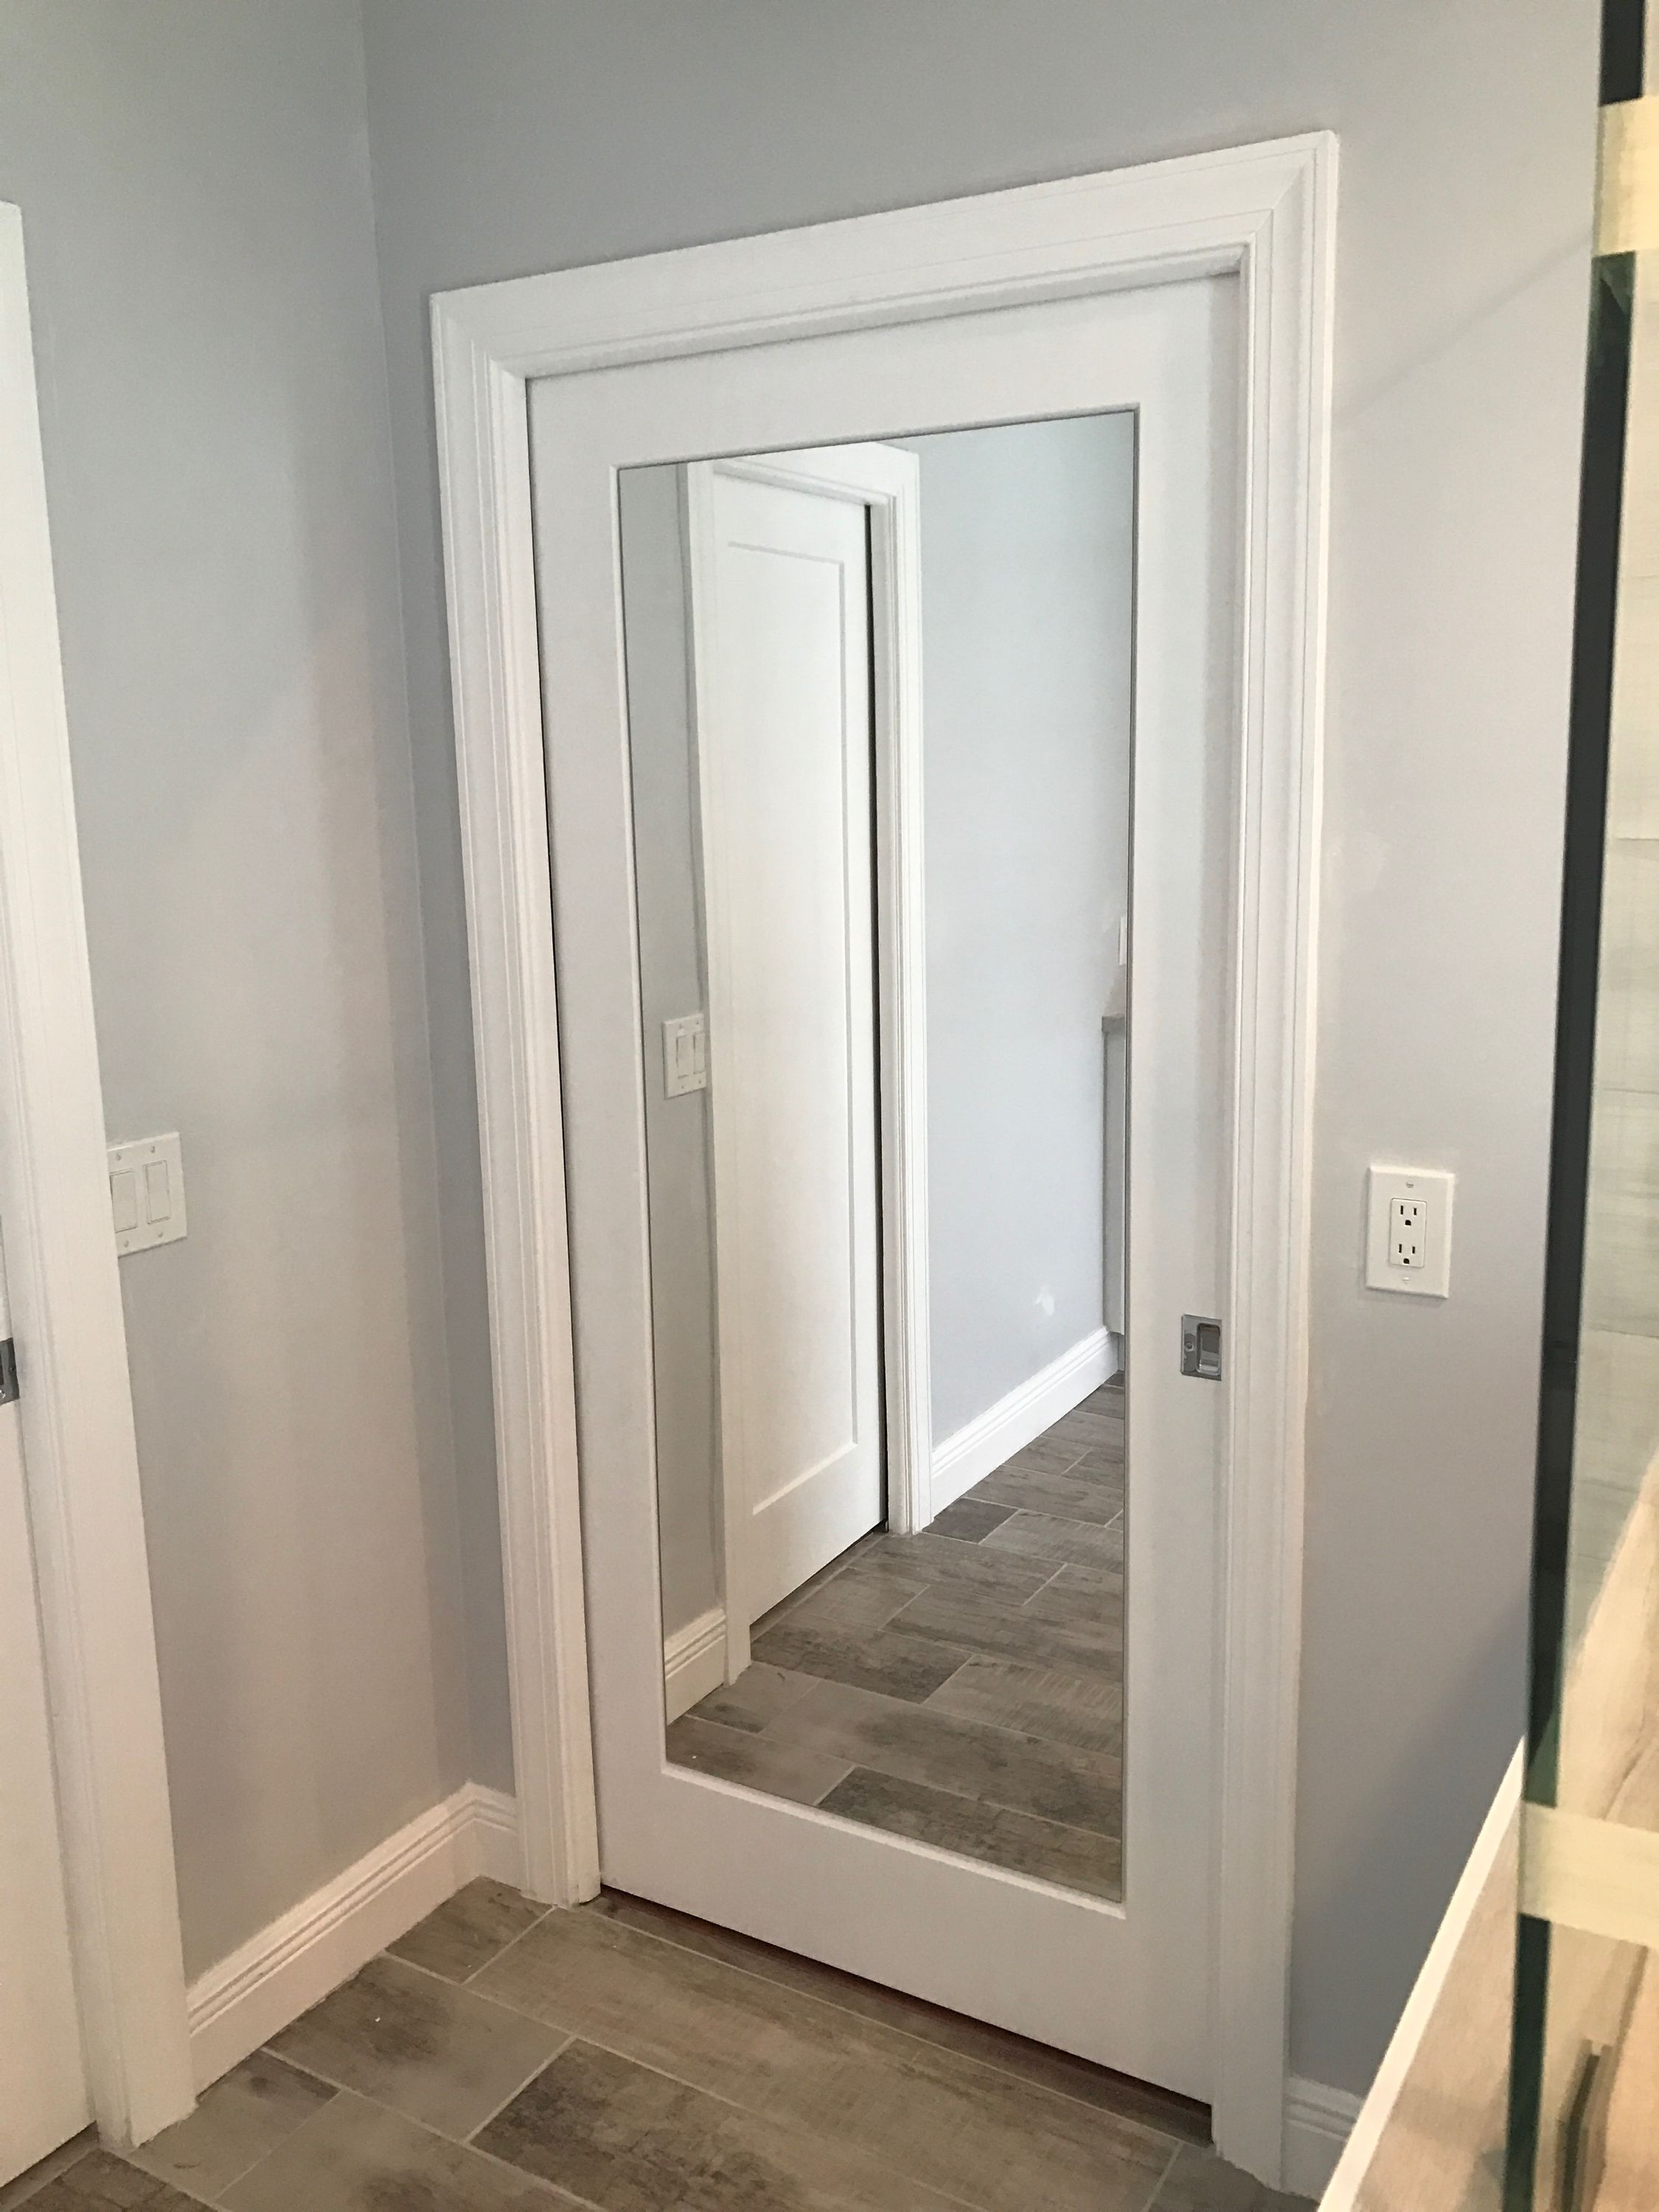 Add A Full Length Mirror Into Madison Hollow Pocket Door From Home Depot Genius